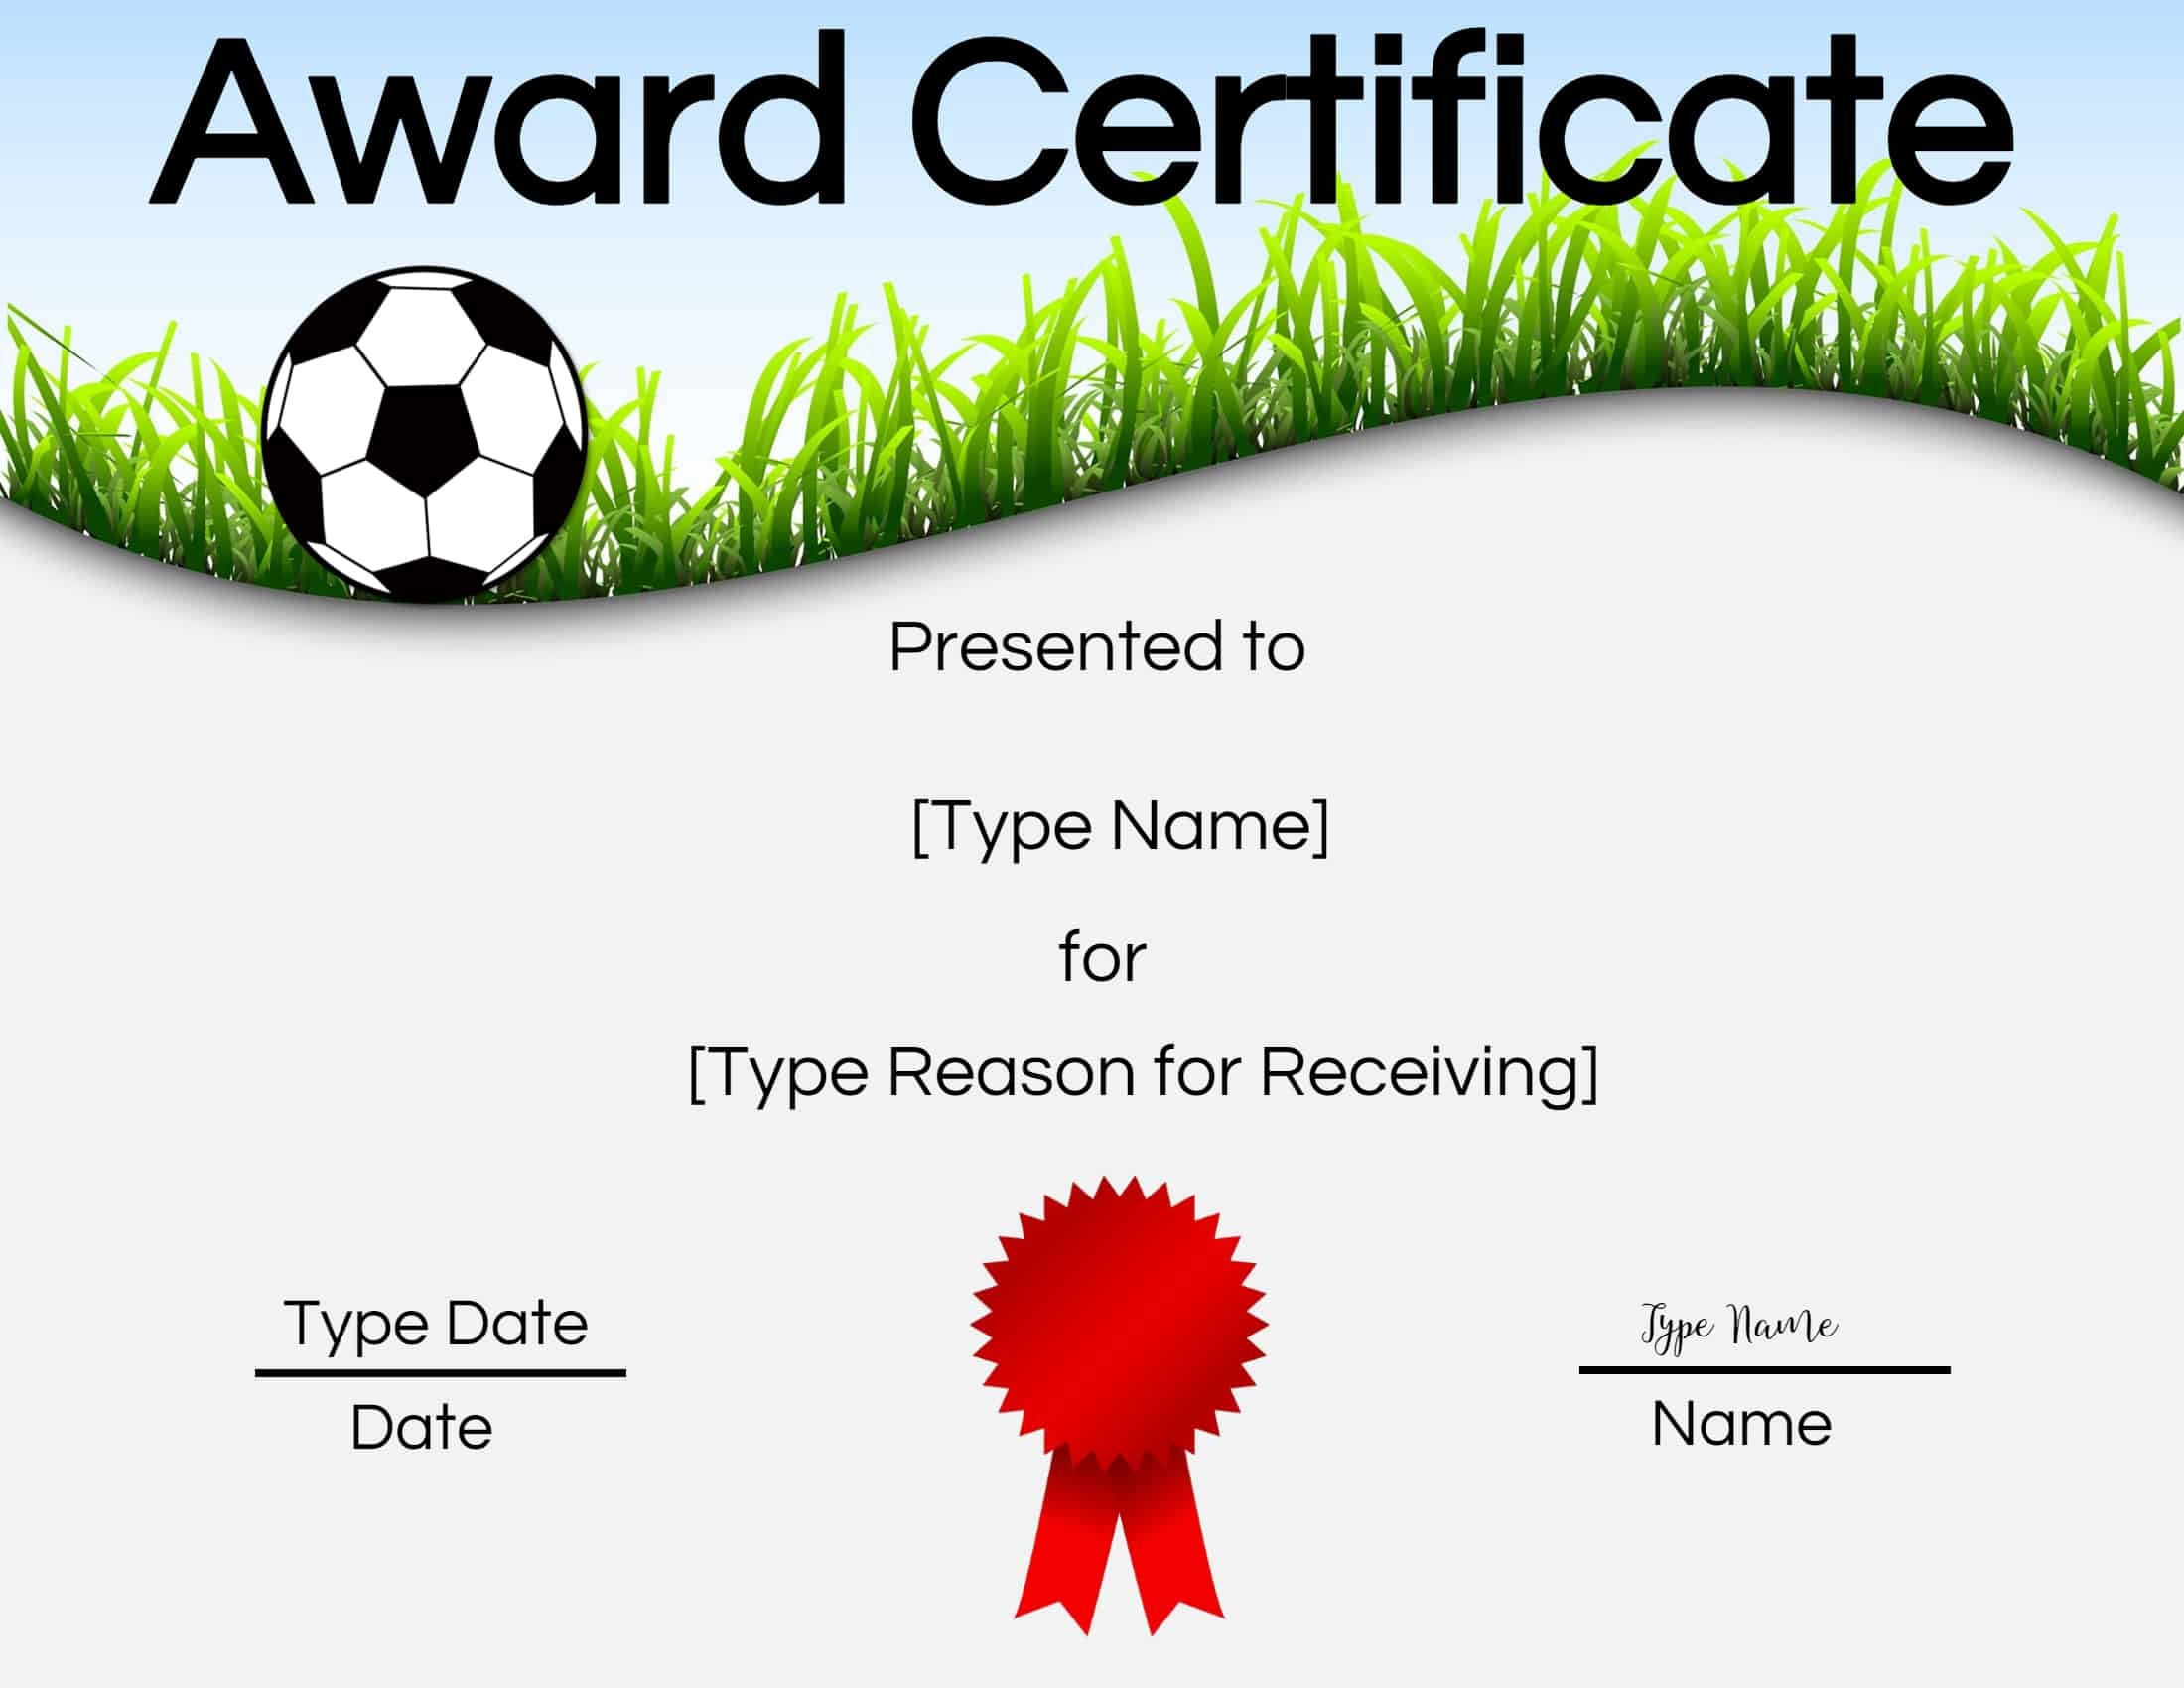 Free Soccer Certificate Maker | Edit Online And Print At Home - Free Soccer Award Certificates Printable